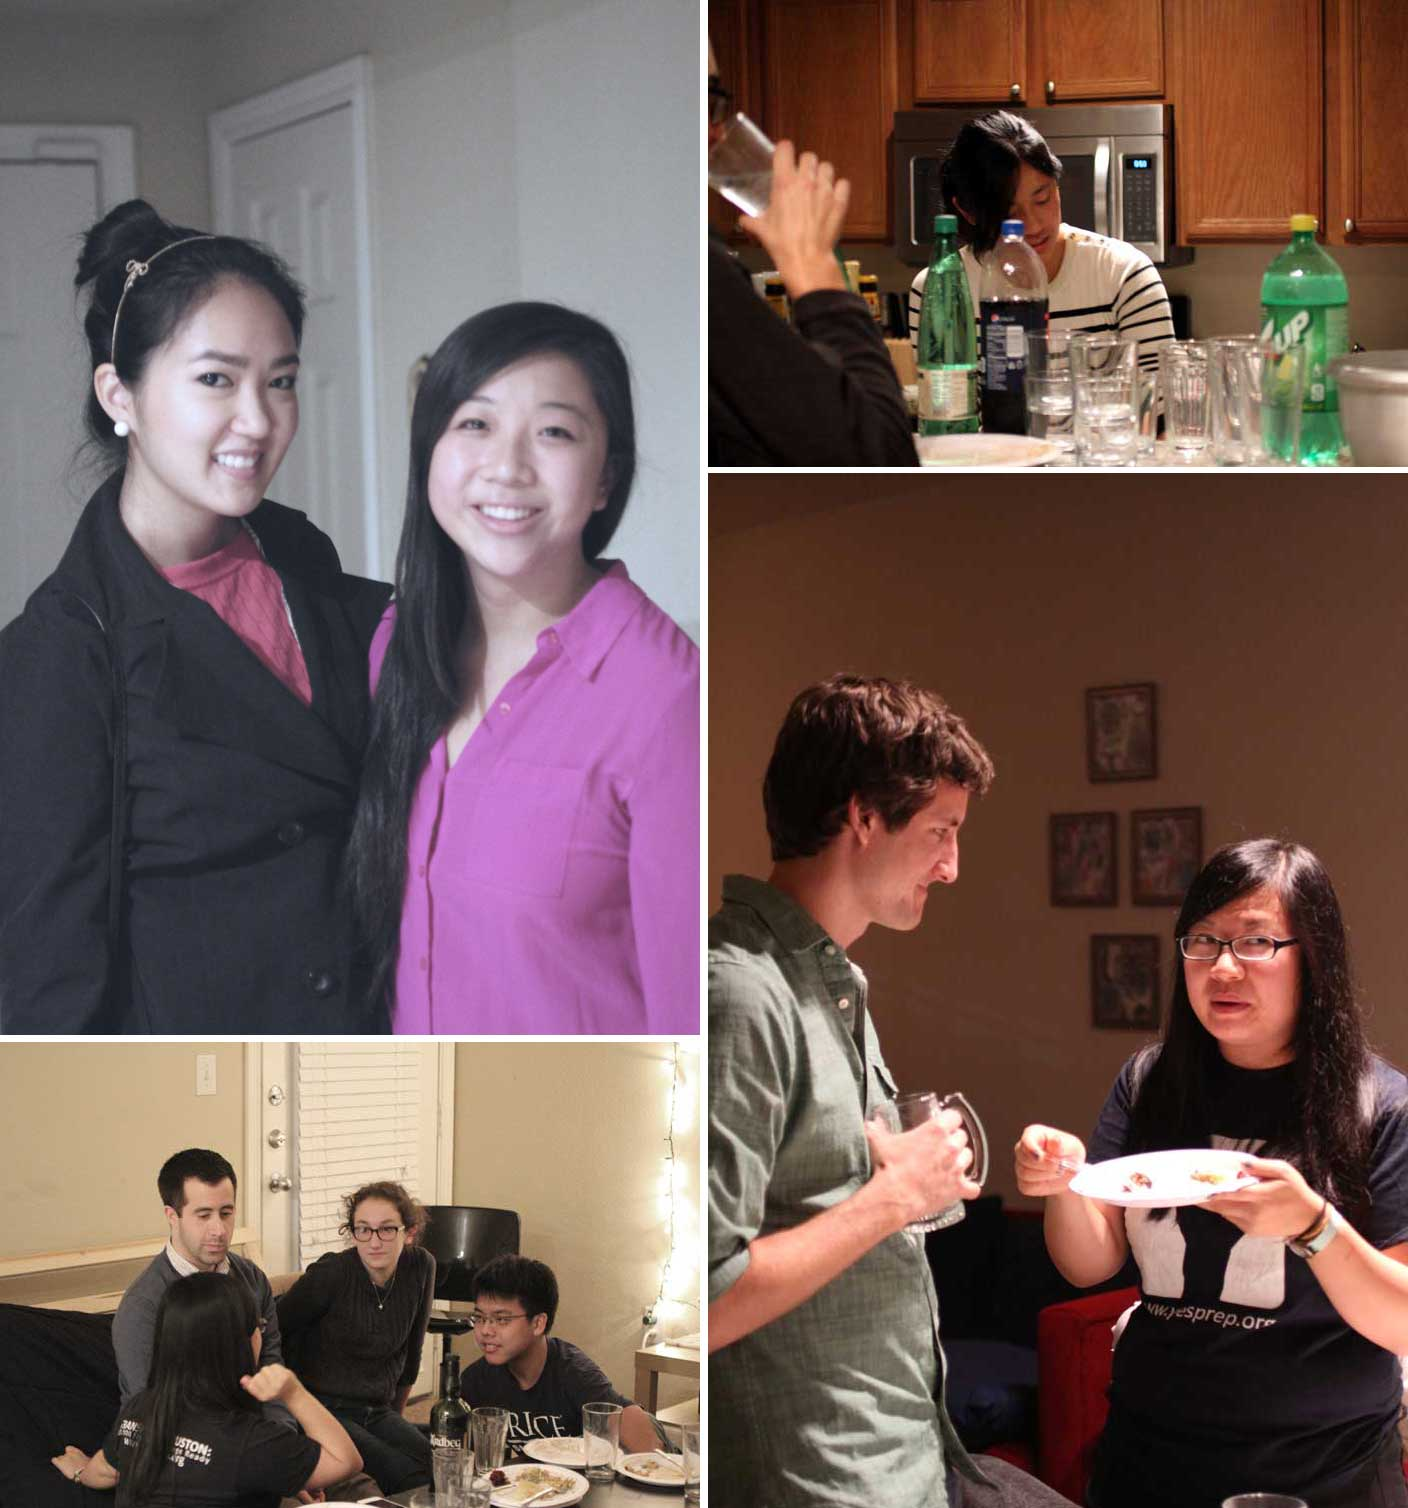 Clockwise from top left: Two of the cutest ladies in the land; I love my sister for many reasons, one of which is she does dishes when she comes over (without being asked!); Lilly + Unkle Erik; pie provokes intense conversations.